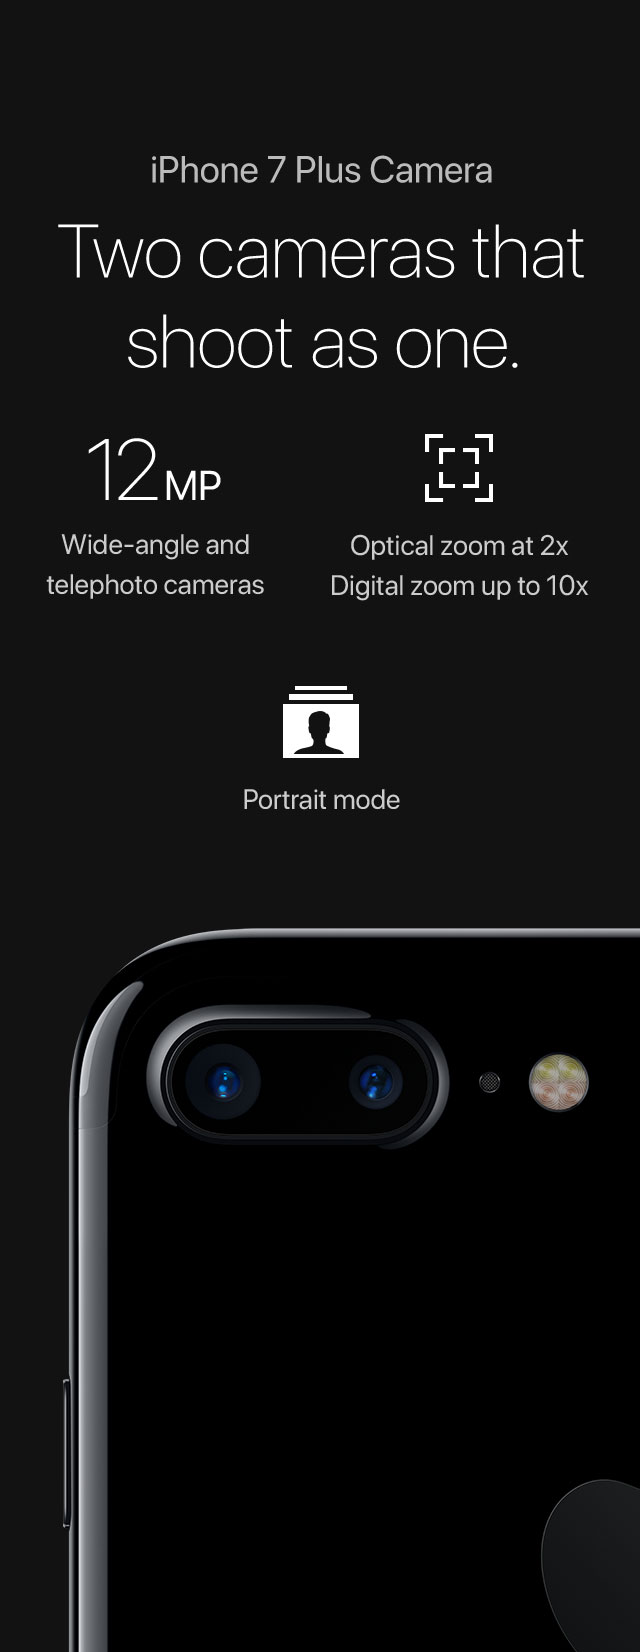 iPhone 7 Plus Camera Two cameras that shoot as one. 12MP Wide-angle and telephoto cameras/Optical zoom at 2x Digital zoom up to 10x/Portrait mode